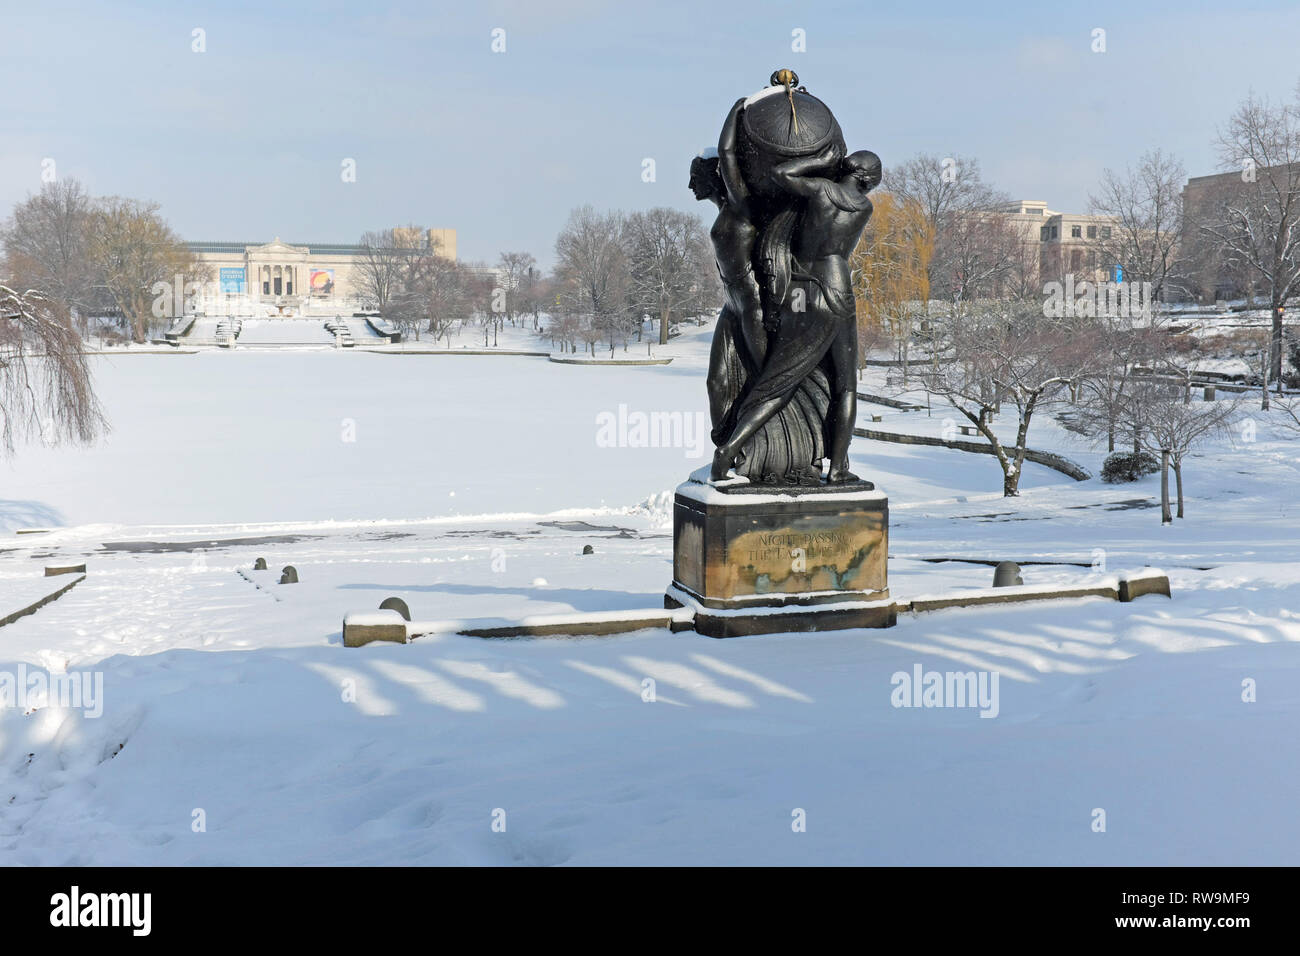 A snow-covered landscape in the University Circle neighborhood of Cleveland, Ohio, USA with the Cleveland Museum of Art in the background. Stock Photo